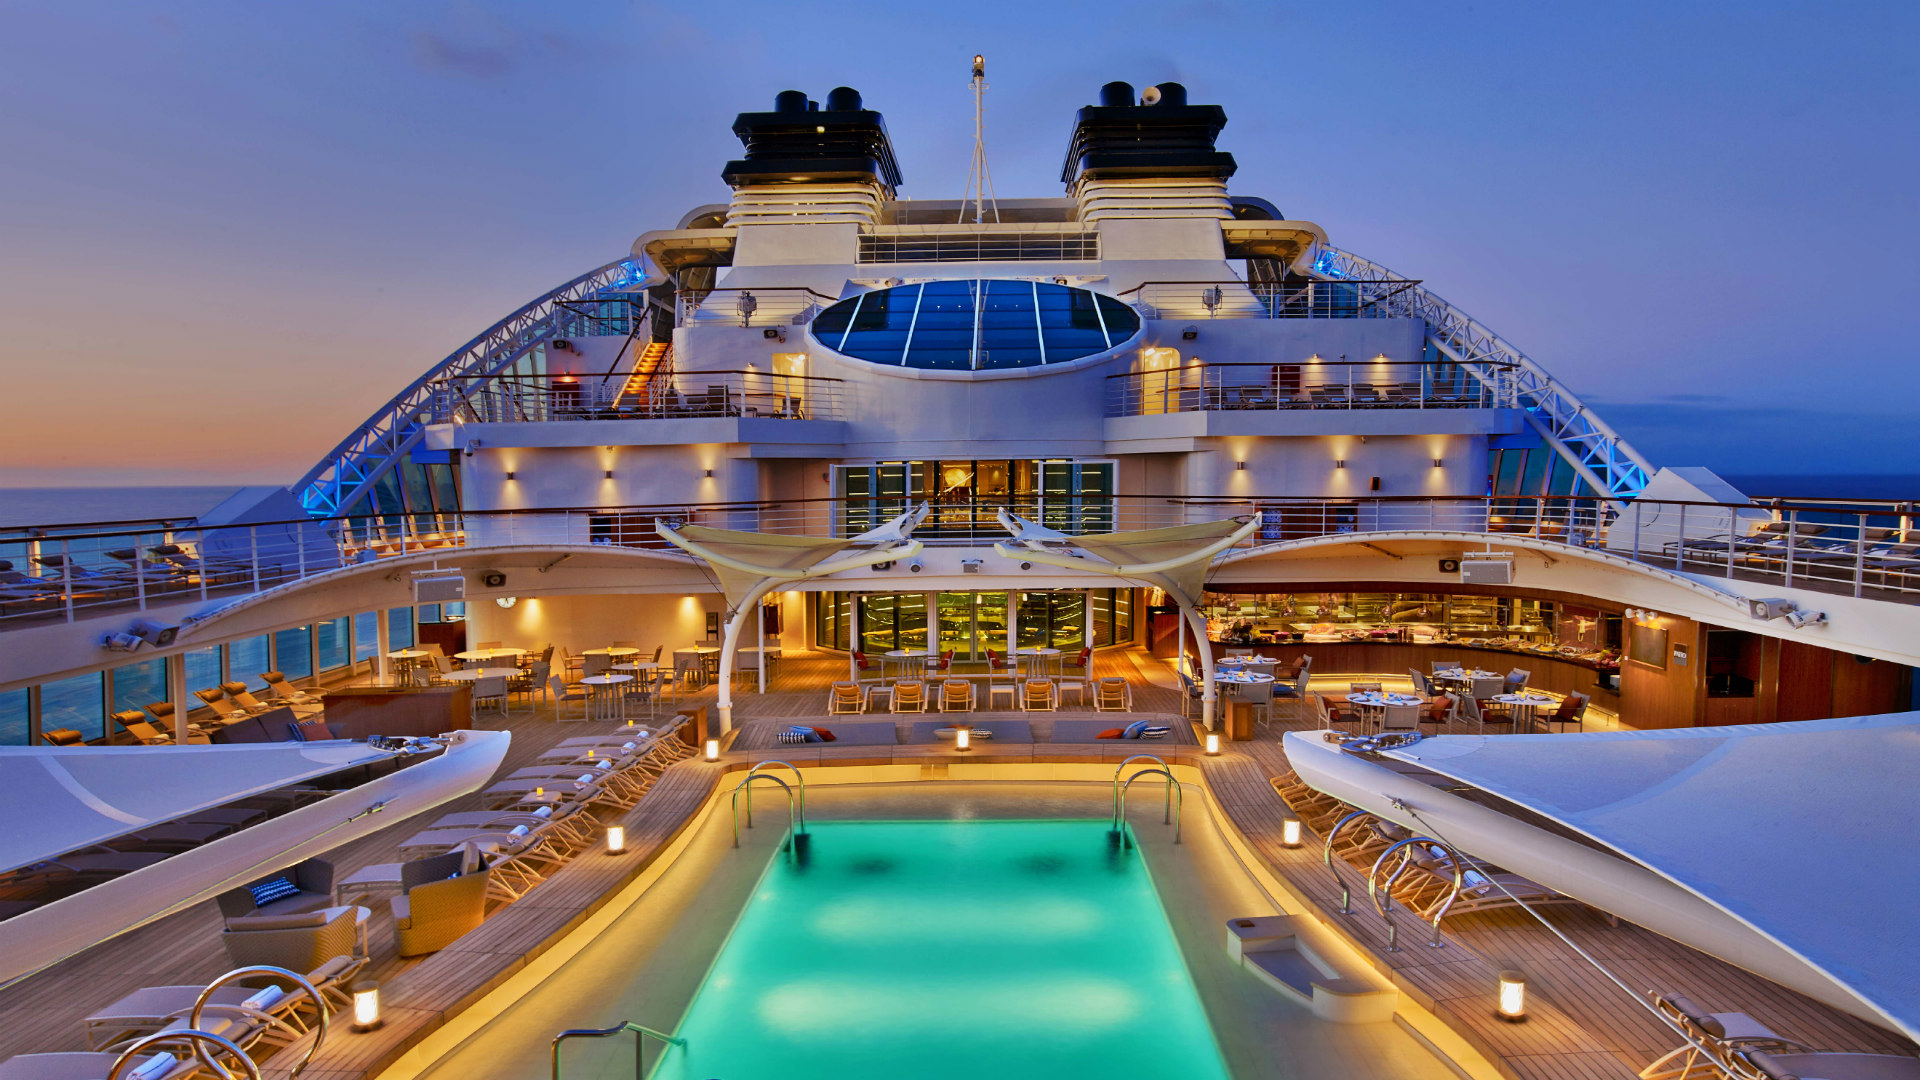 Seabourn Cruise Line announces its 2022 world cruise